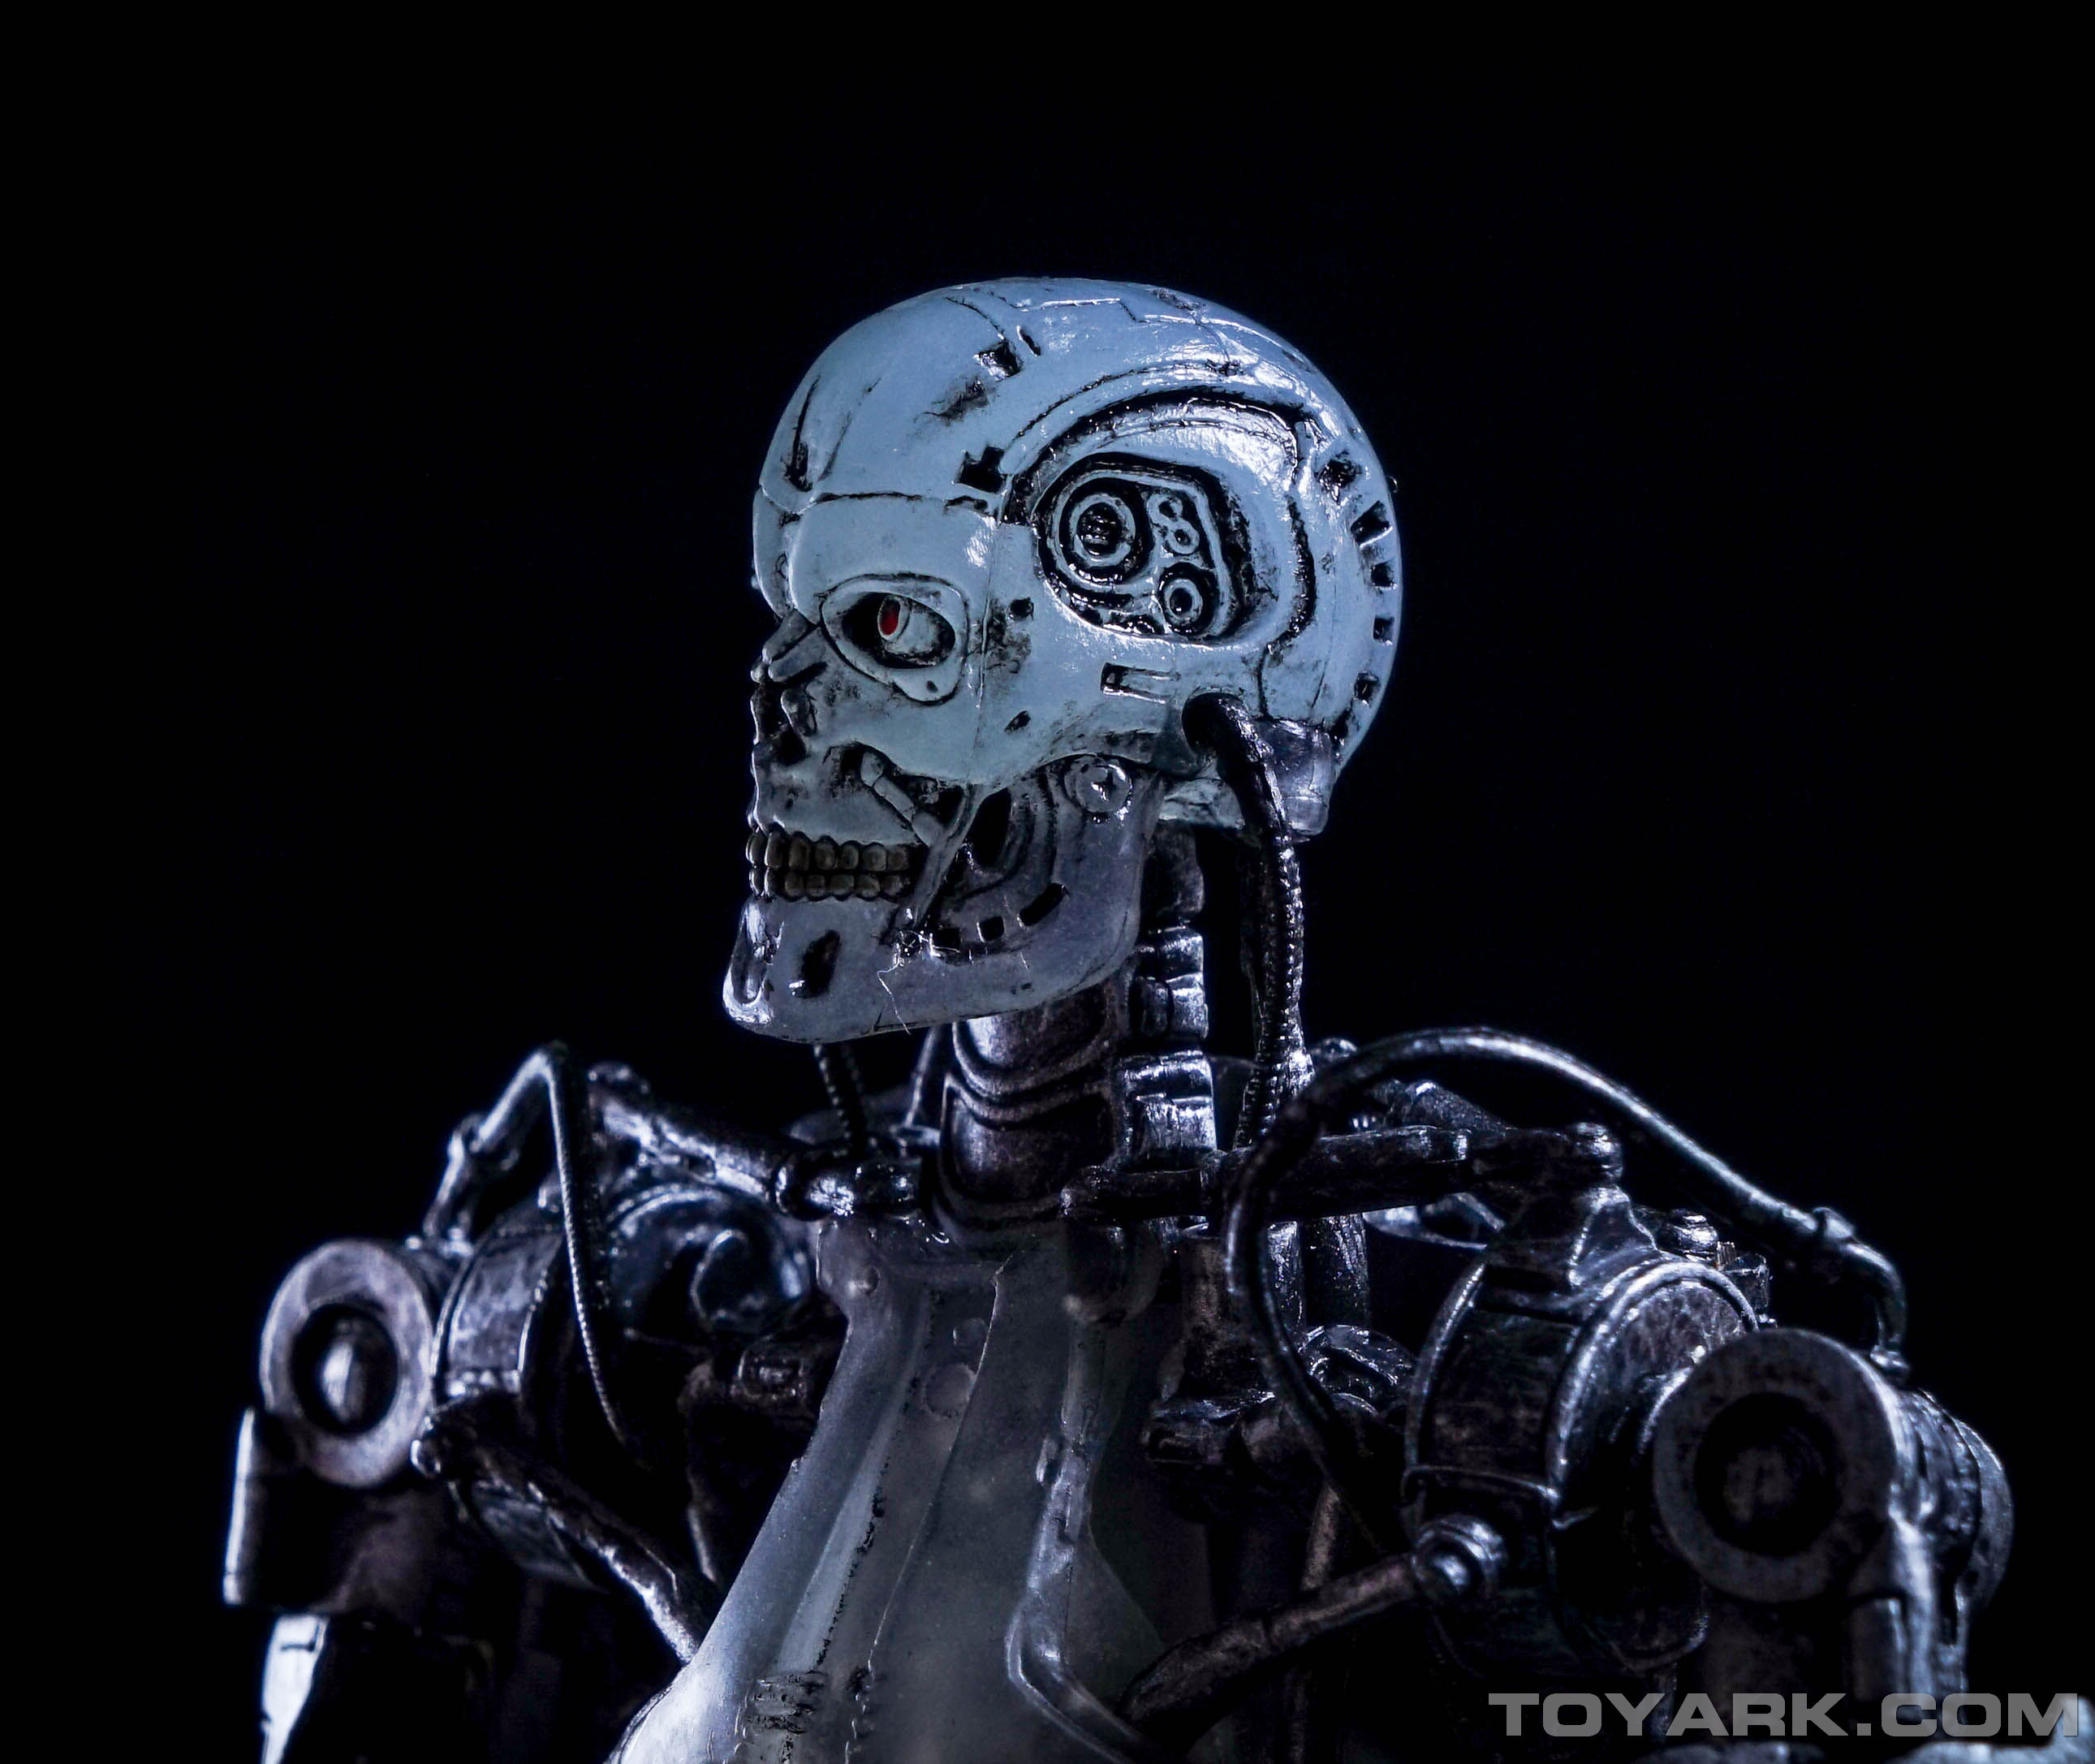 http://news.toyark.com/wp-content/uploads/sites/4/2015/08/Terminator-2-T-800-Endoglow-043.jpg